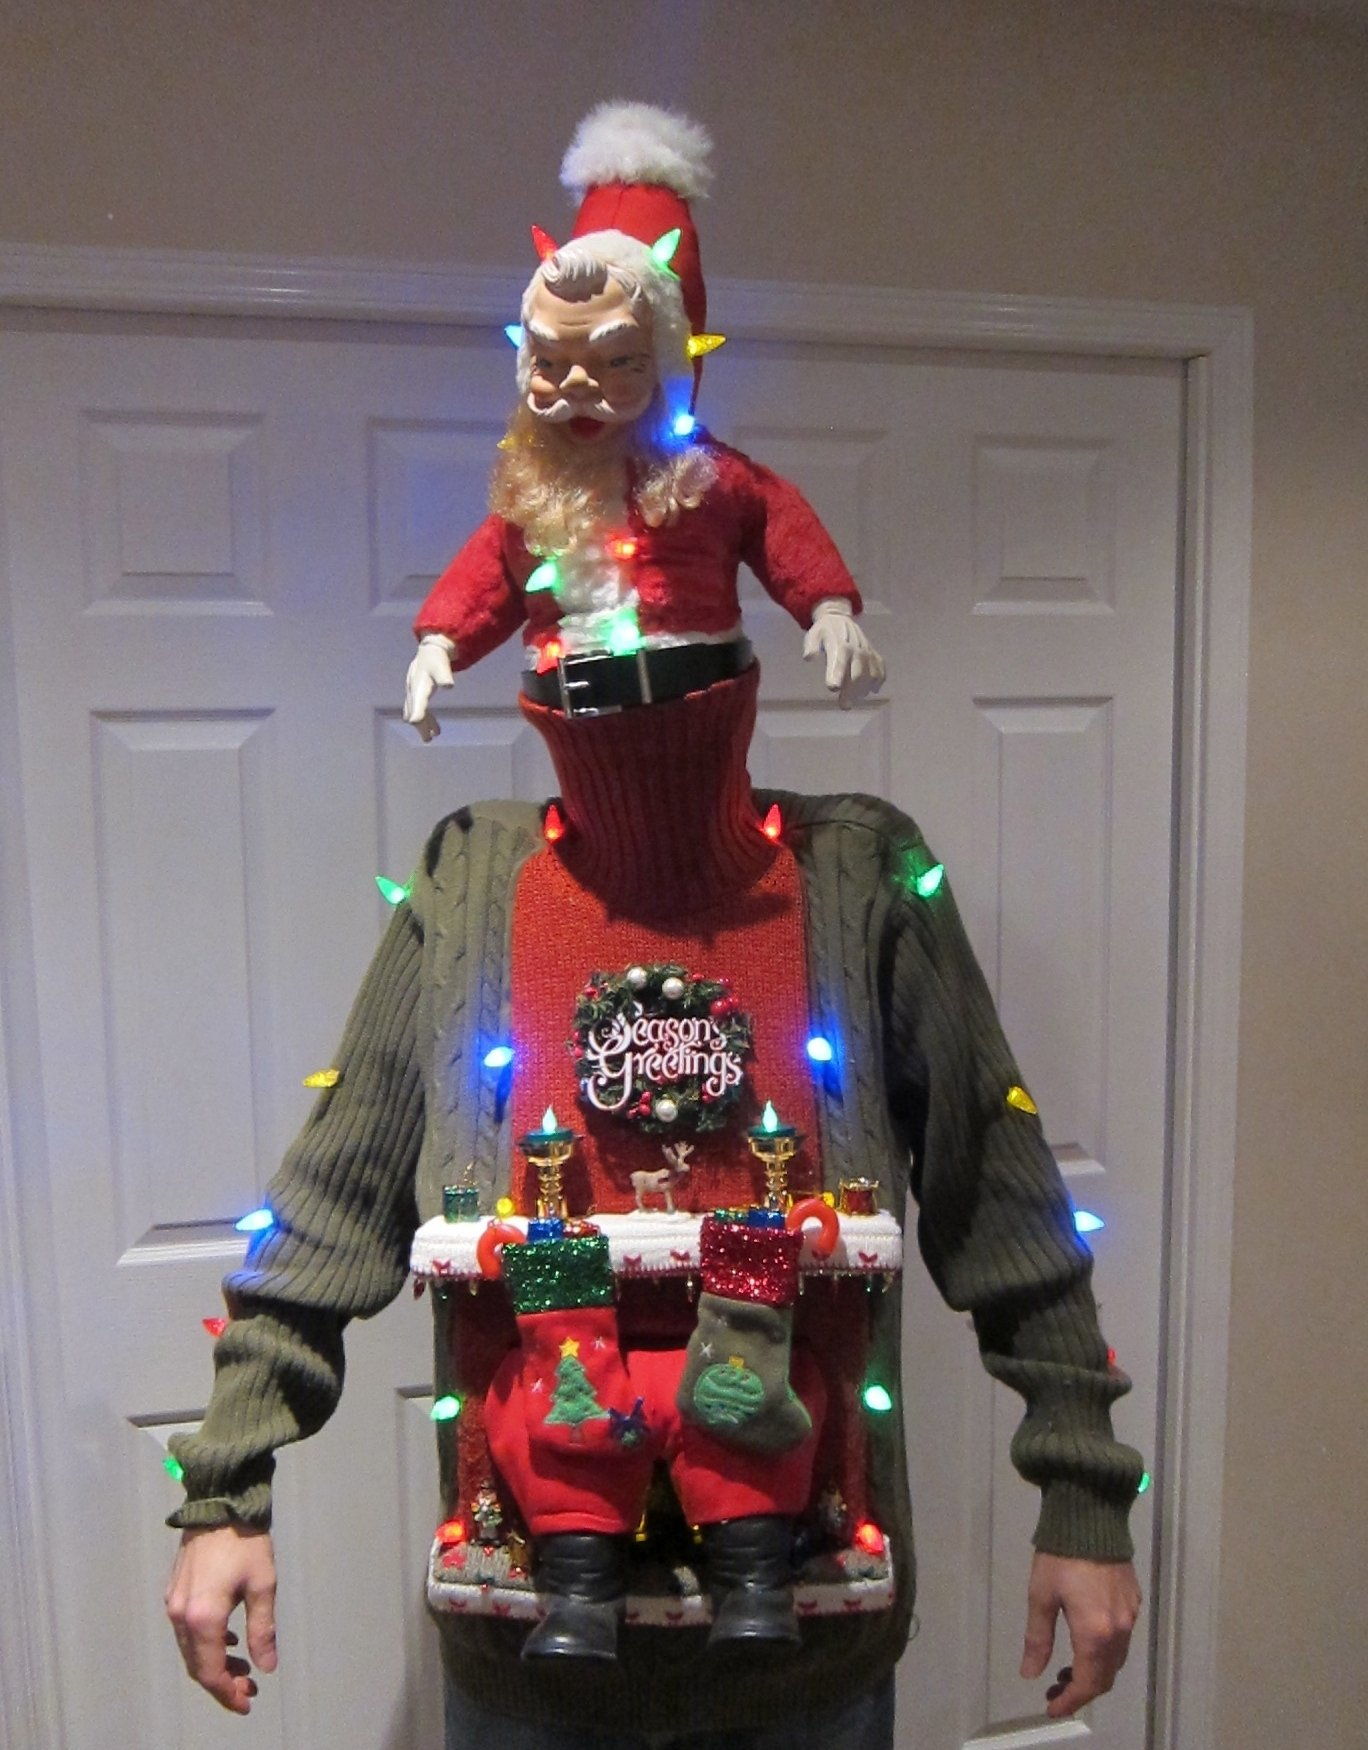 10 Wonderful How To Make An Ugly Christmas Sweater Ideas 53 diy ugly christmas sweater ideas 5